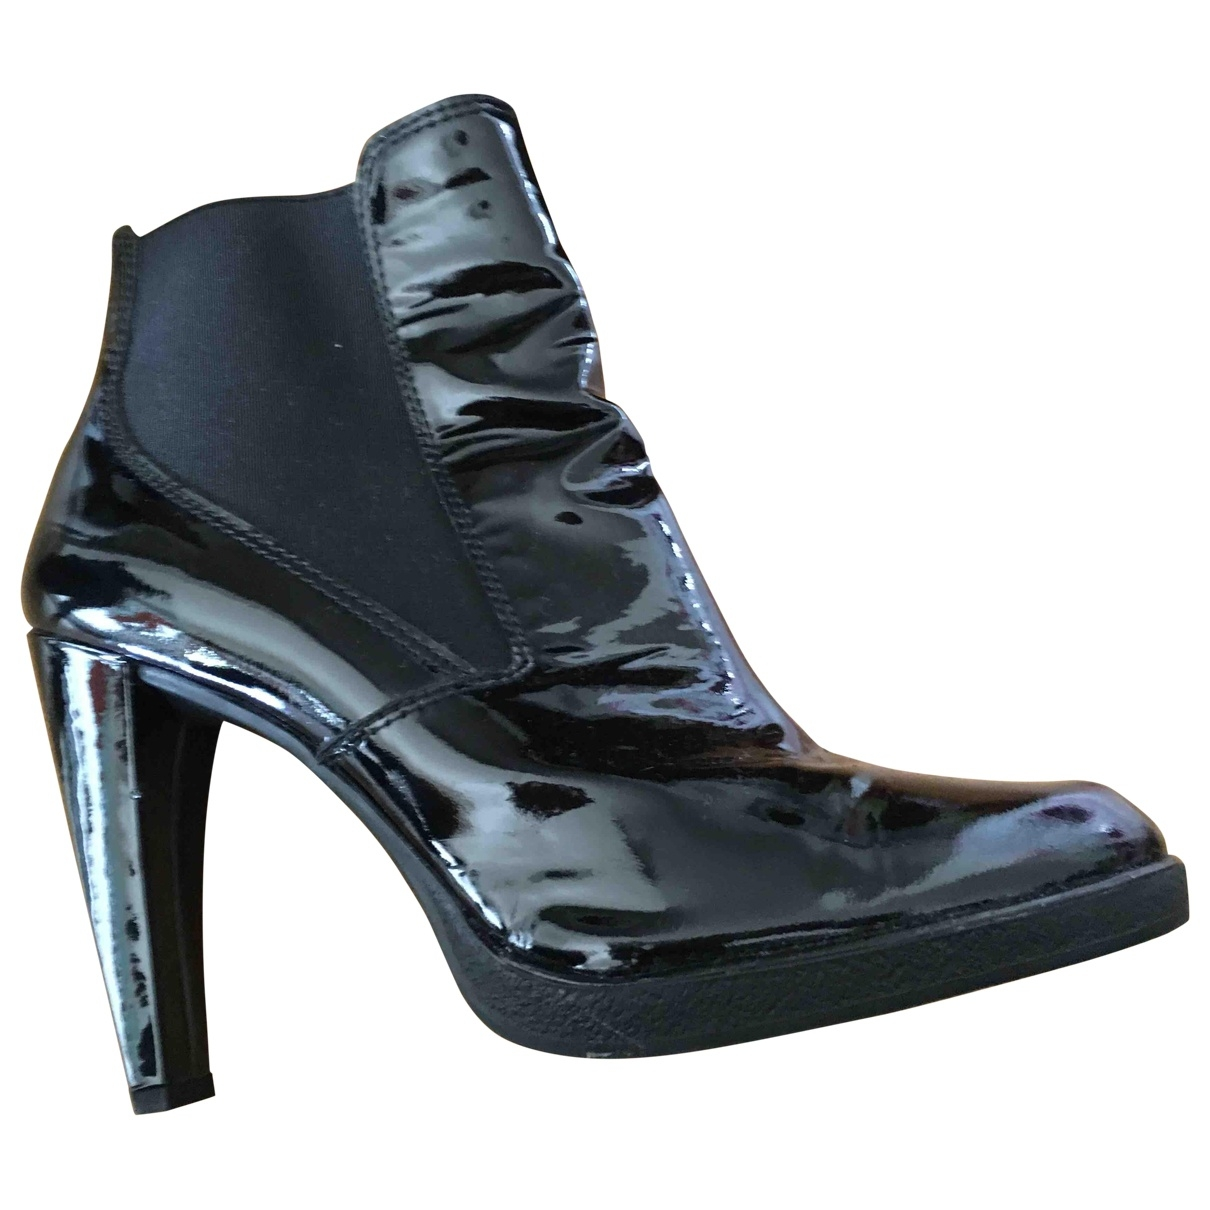 Stuart Weitzman \N Black Patent leather Ankle boots for Women 37 EU